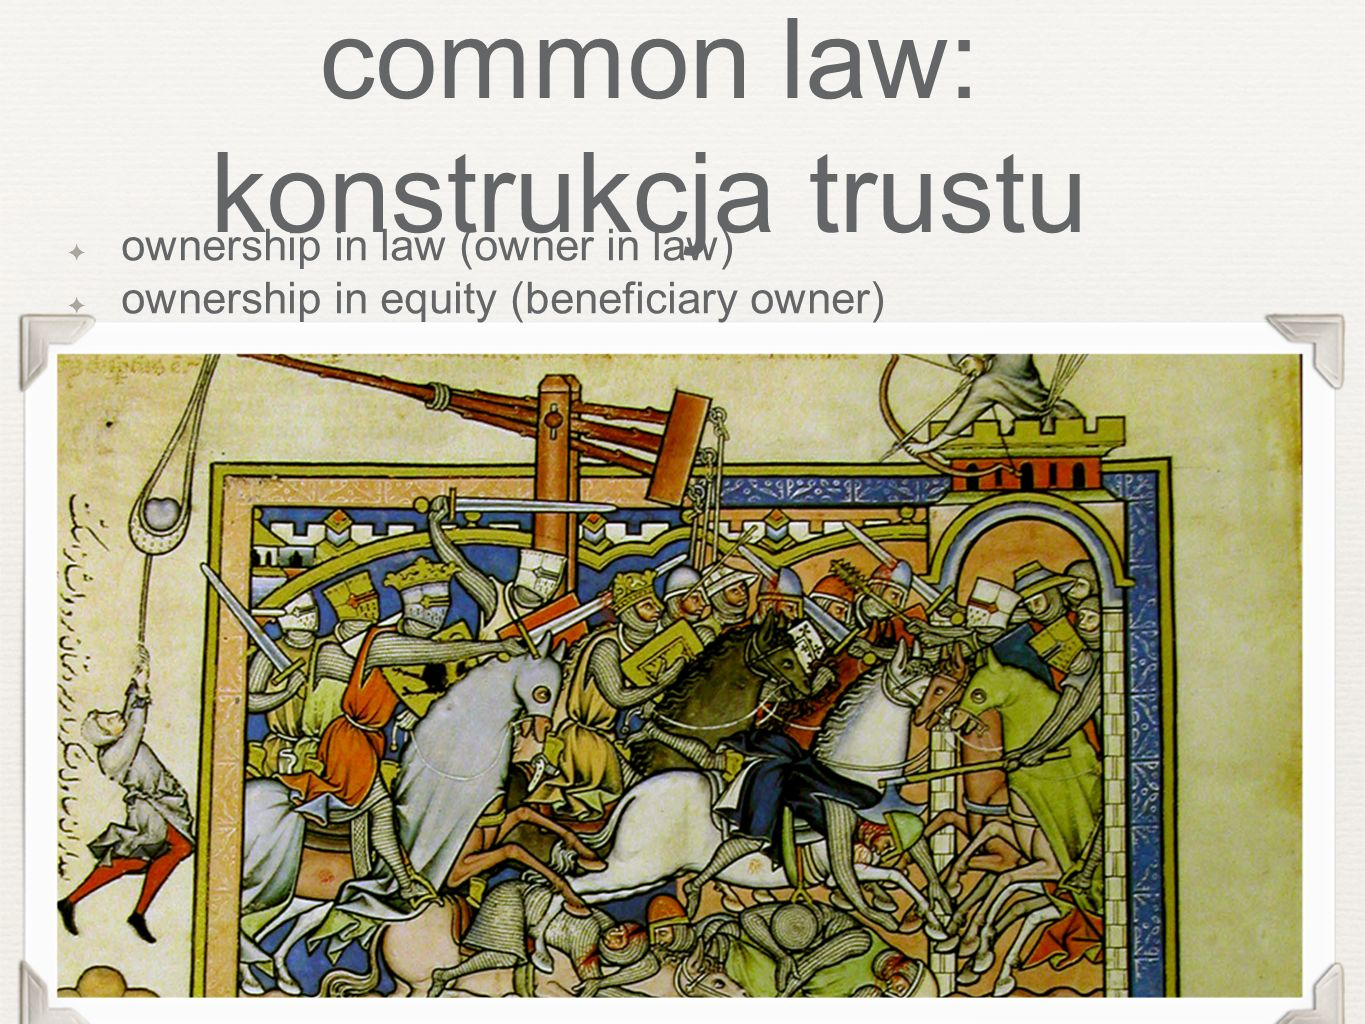 common law: konstrukcja trustu ownership in law (owner in law) ownership in equity (beneficiary owner)